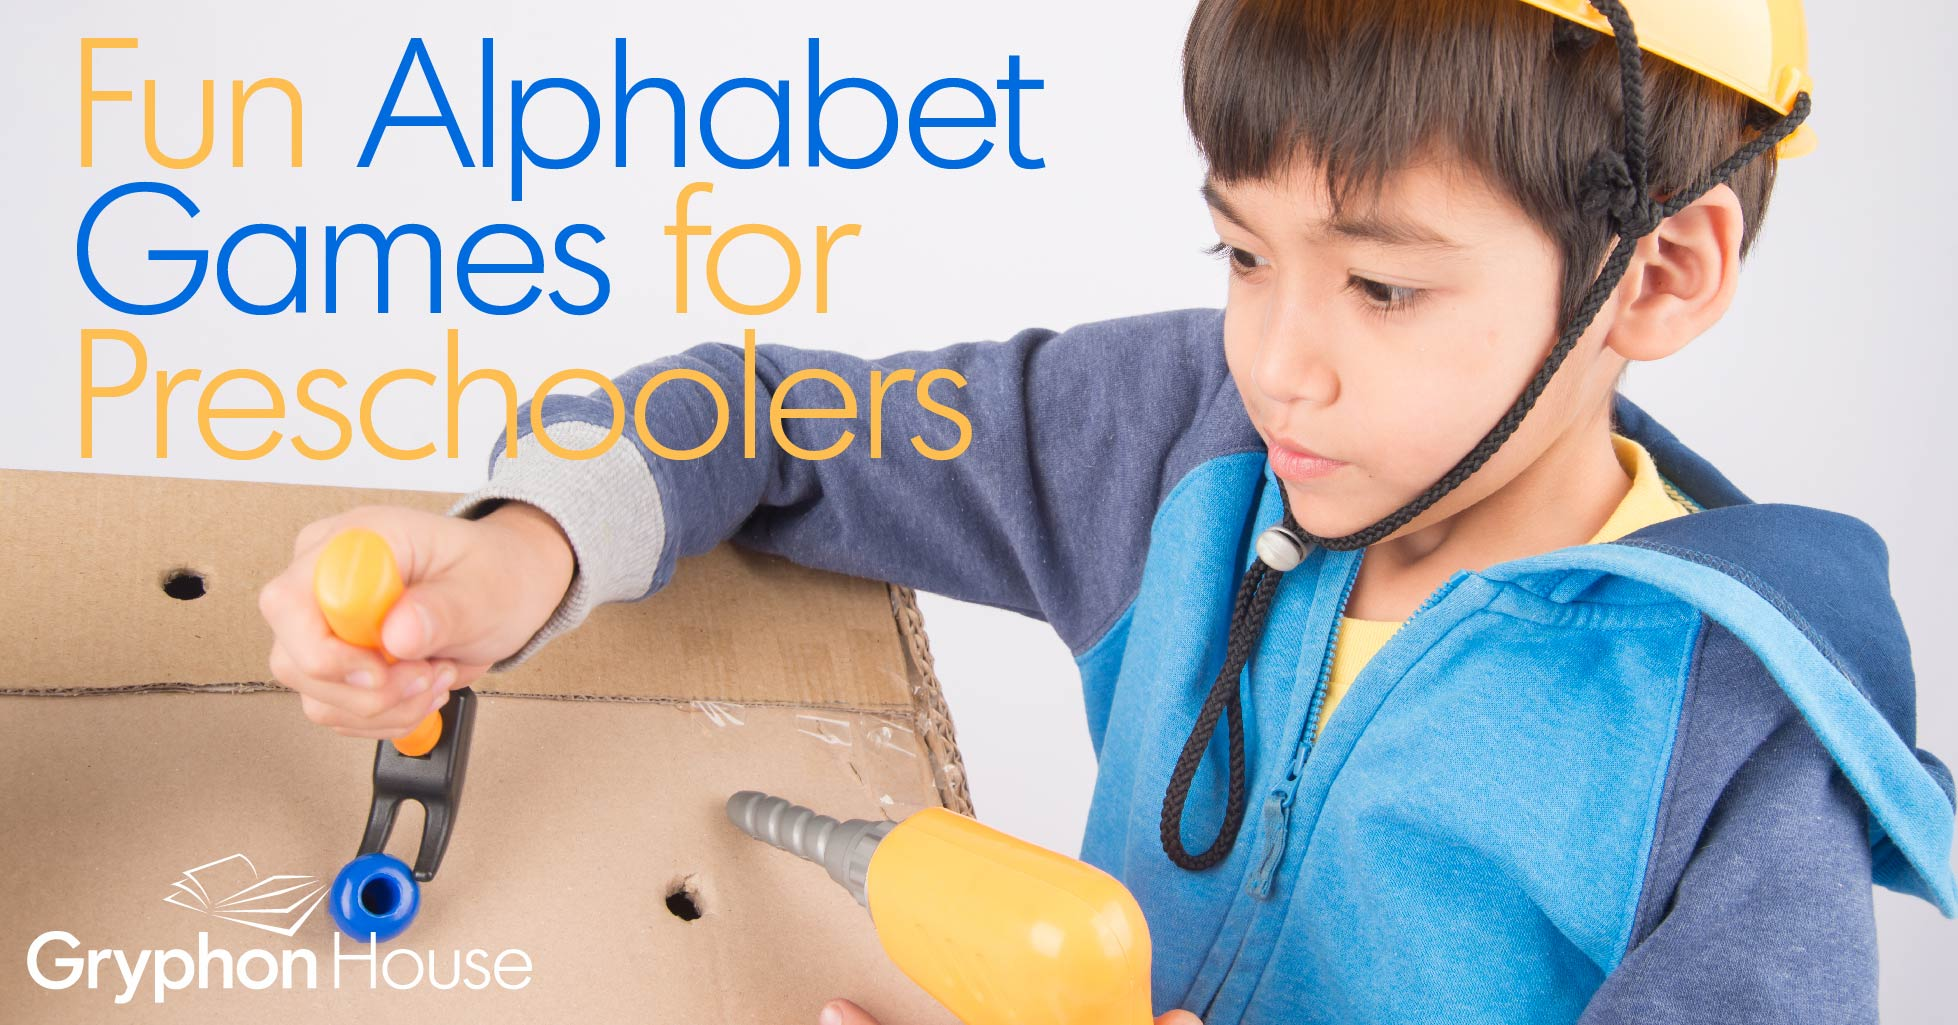 Fun Alphabet Games for Preschoolers | Gryphon House